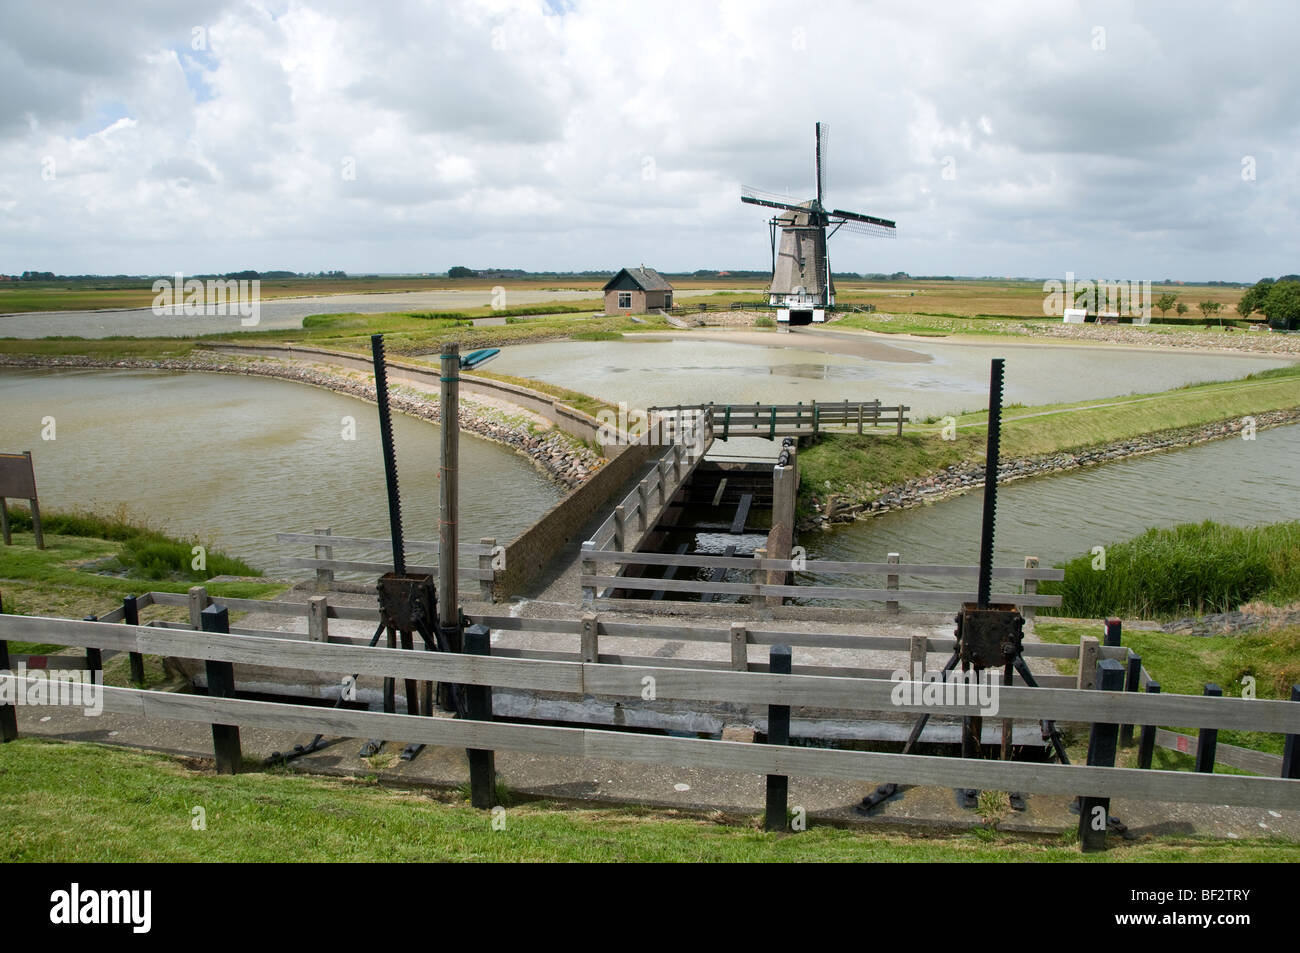 Texel Windmill the Bol pumping water polder Wadden Sea Netherlands - Stock Image